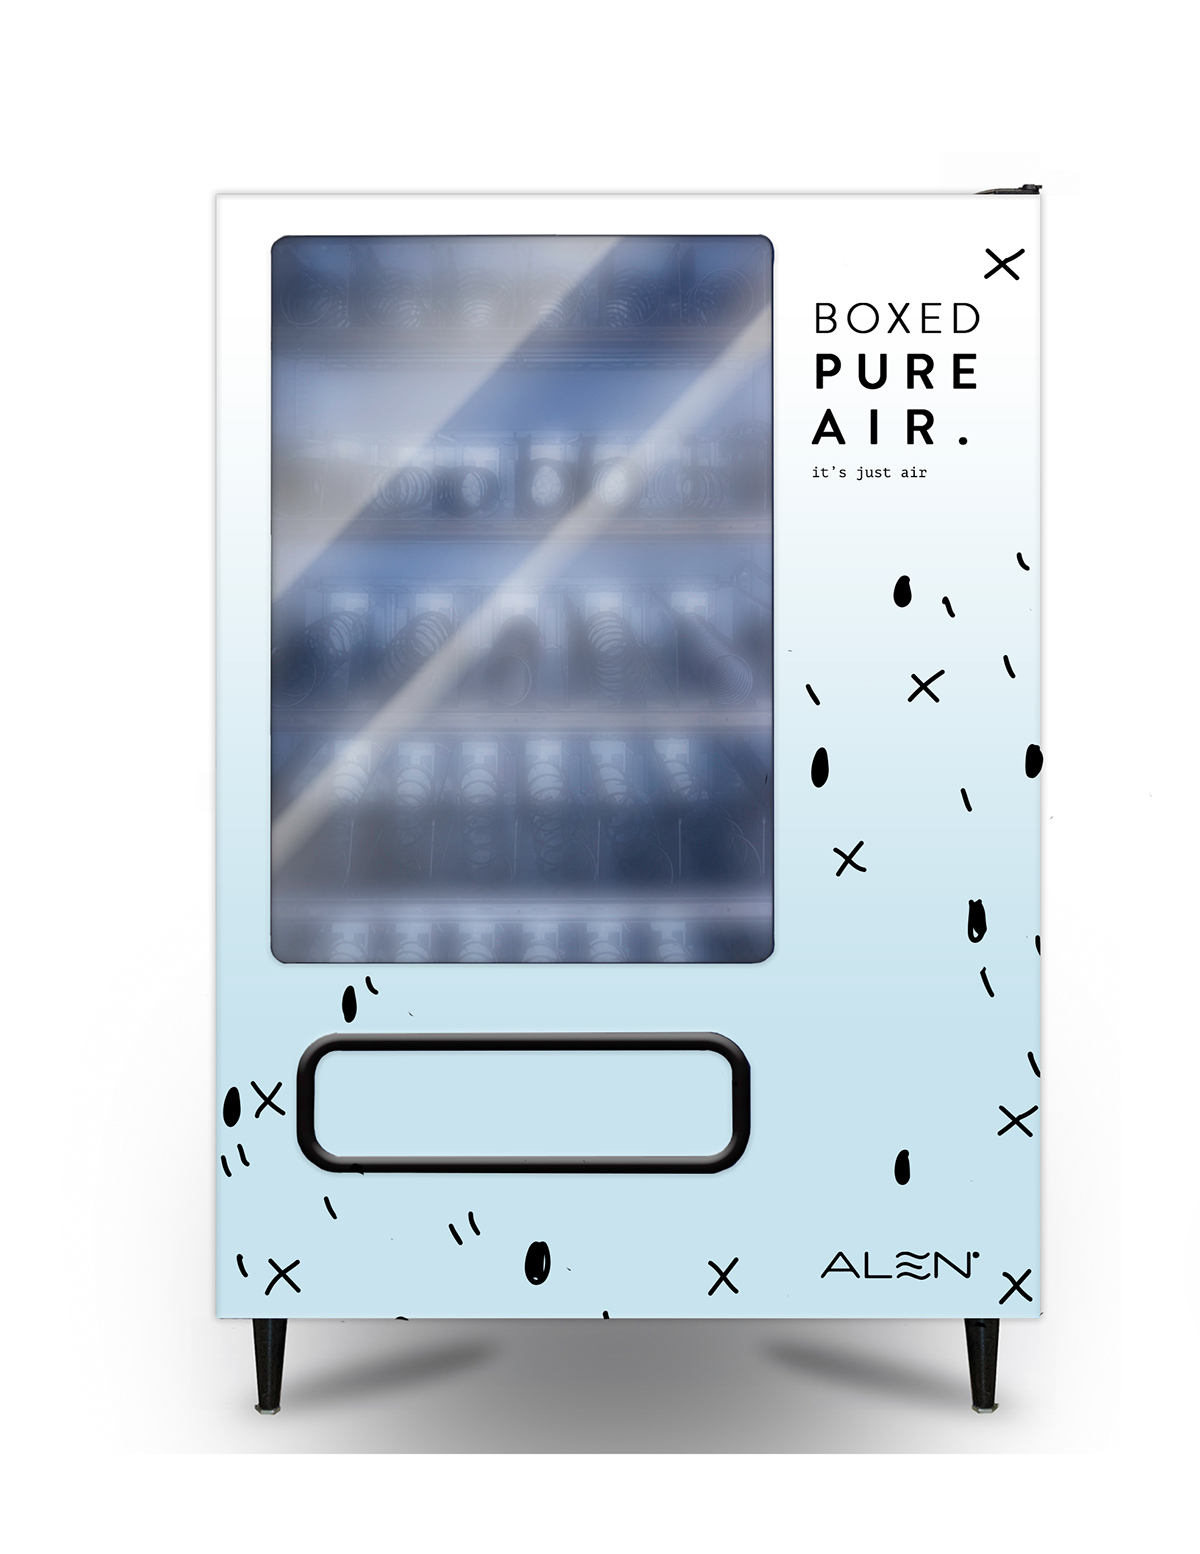 every time a person clicks on the vending machine curious as to what does boxed pure air means a little box will be dispensed by the machine - Alen Air Purifier